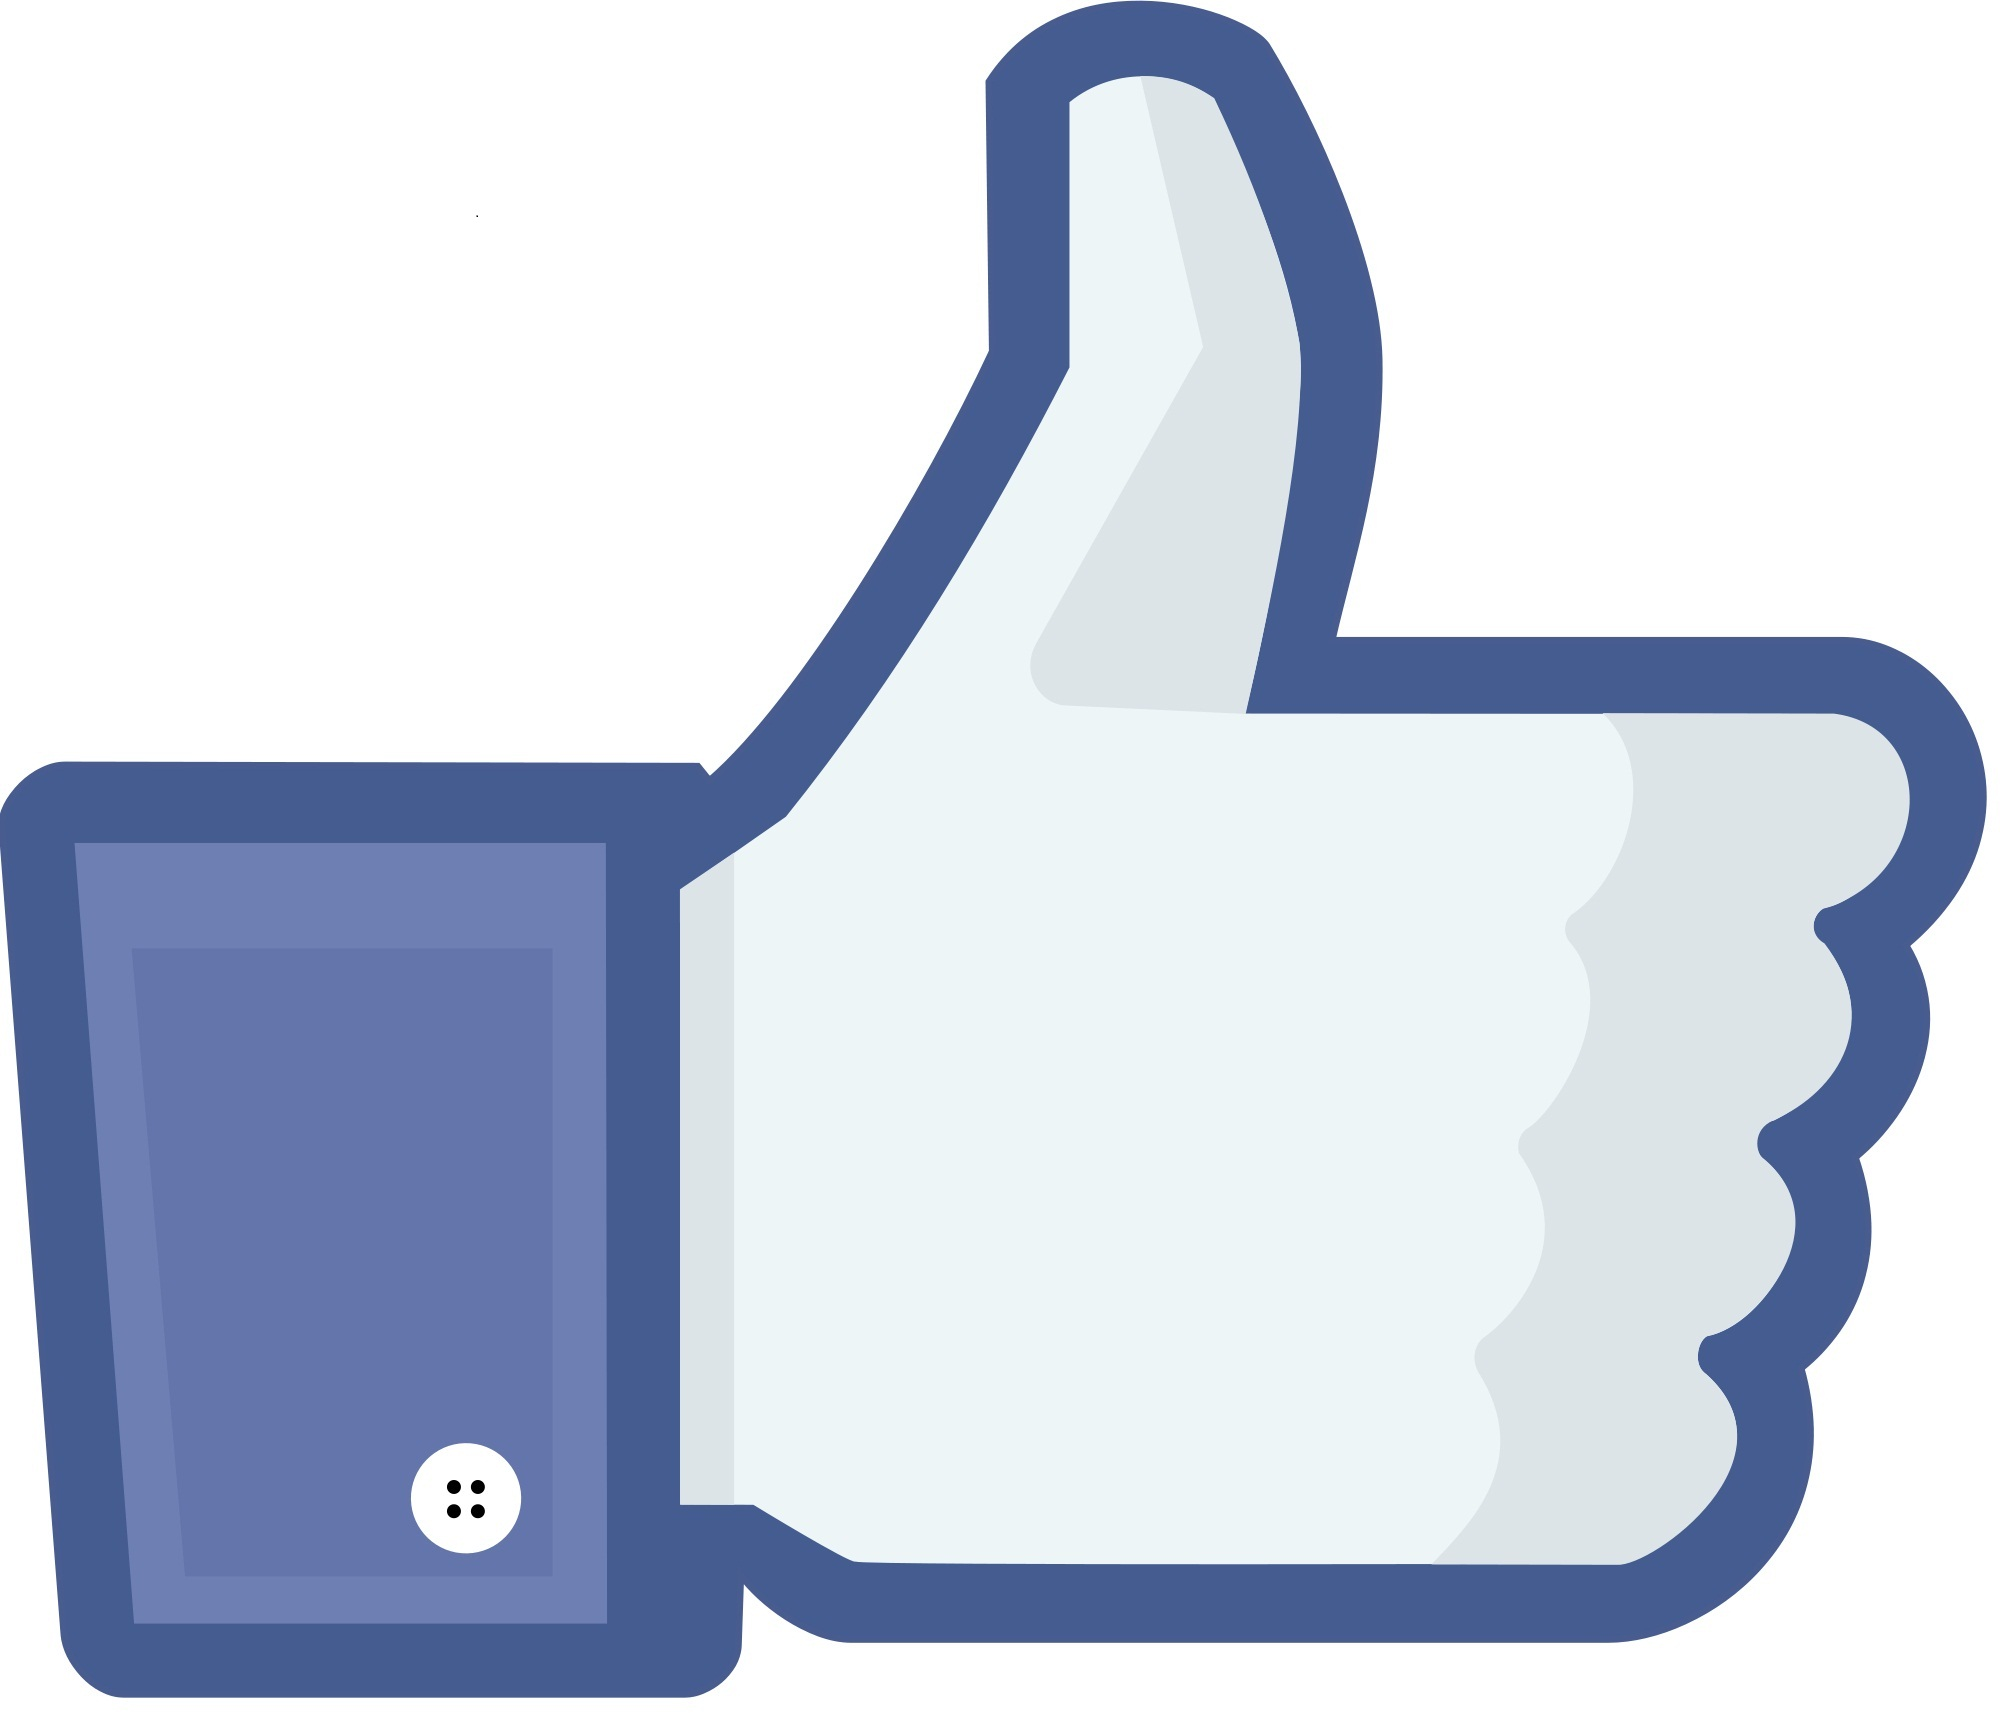 give you 600 likes on your facebook post